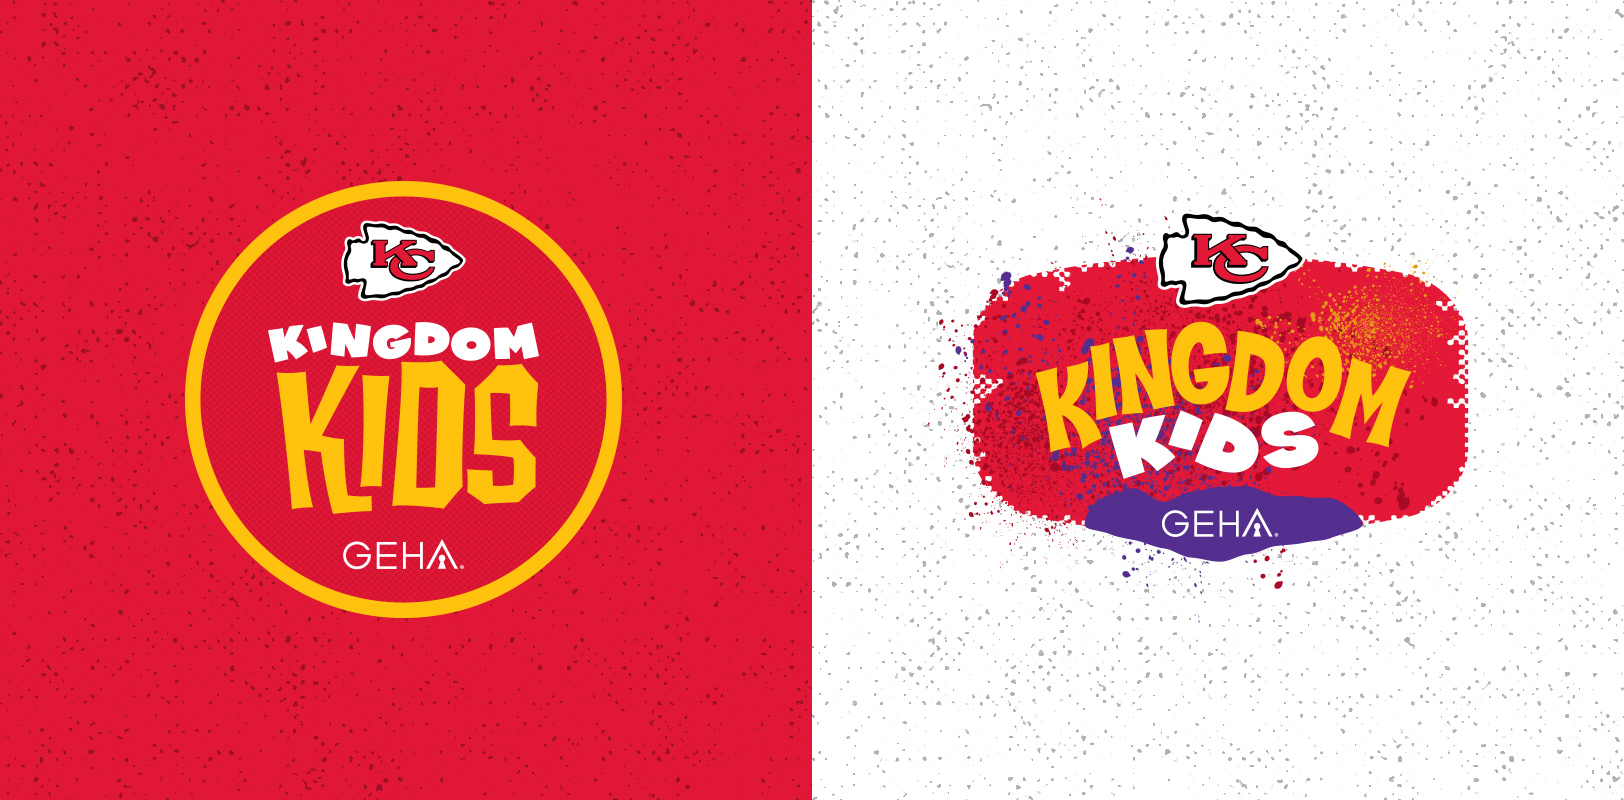 Sports logo design concepts for the Kansas City Chiefs Kingdom Kids program